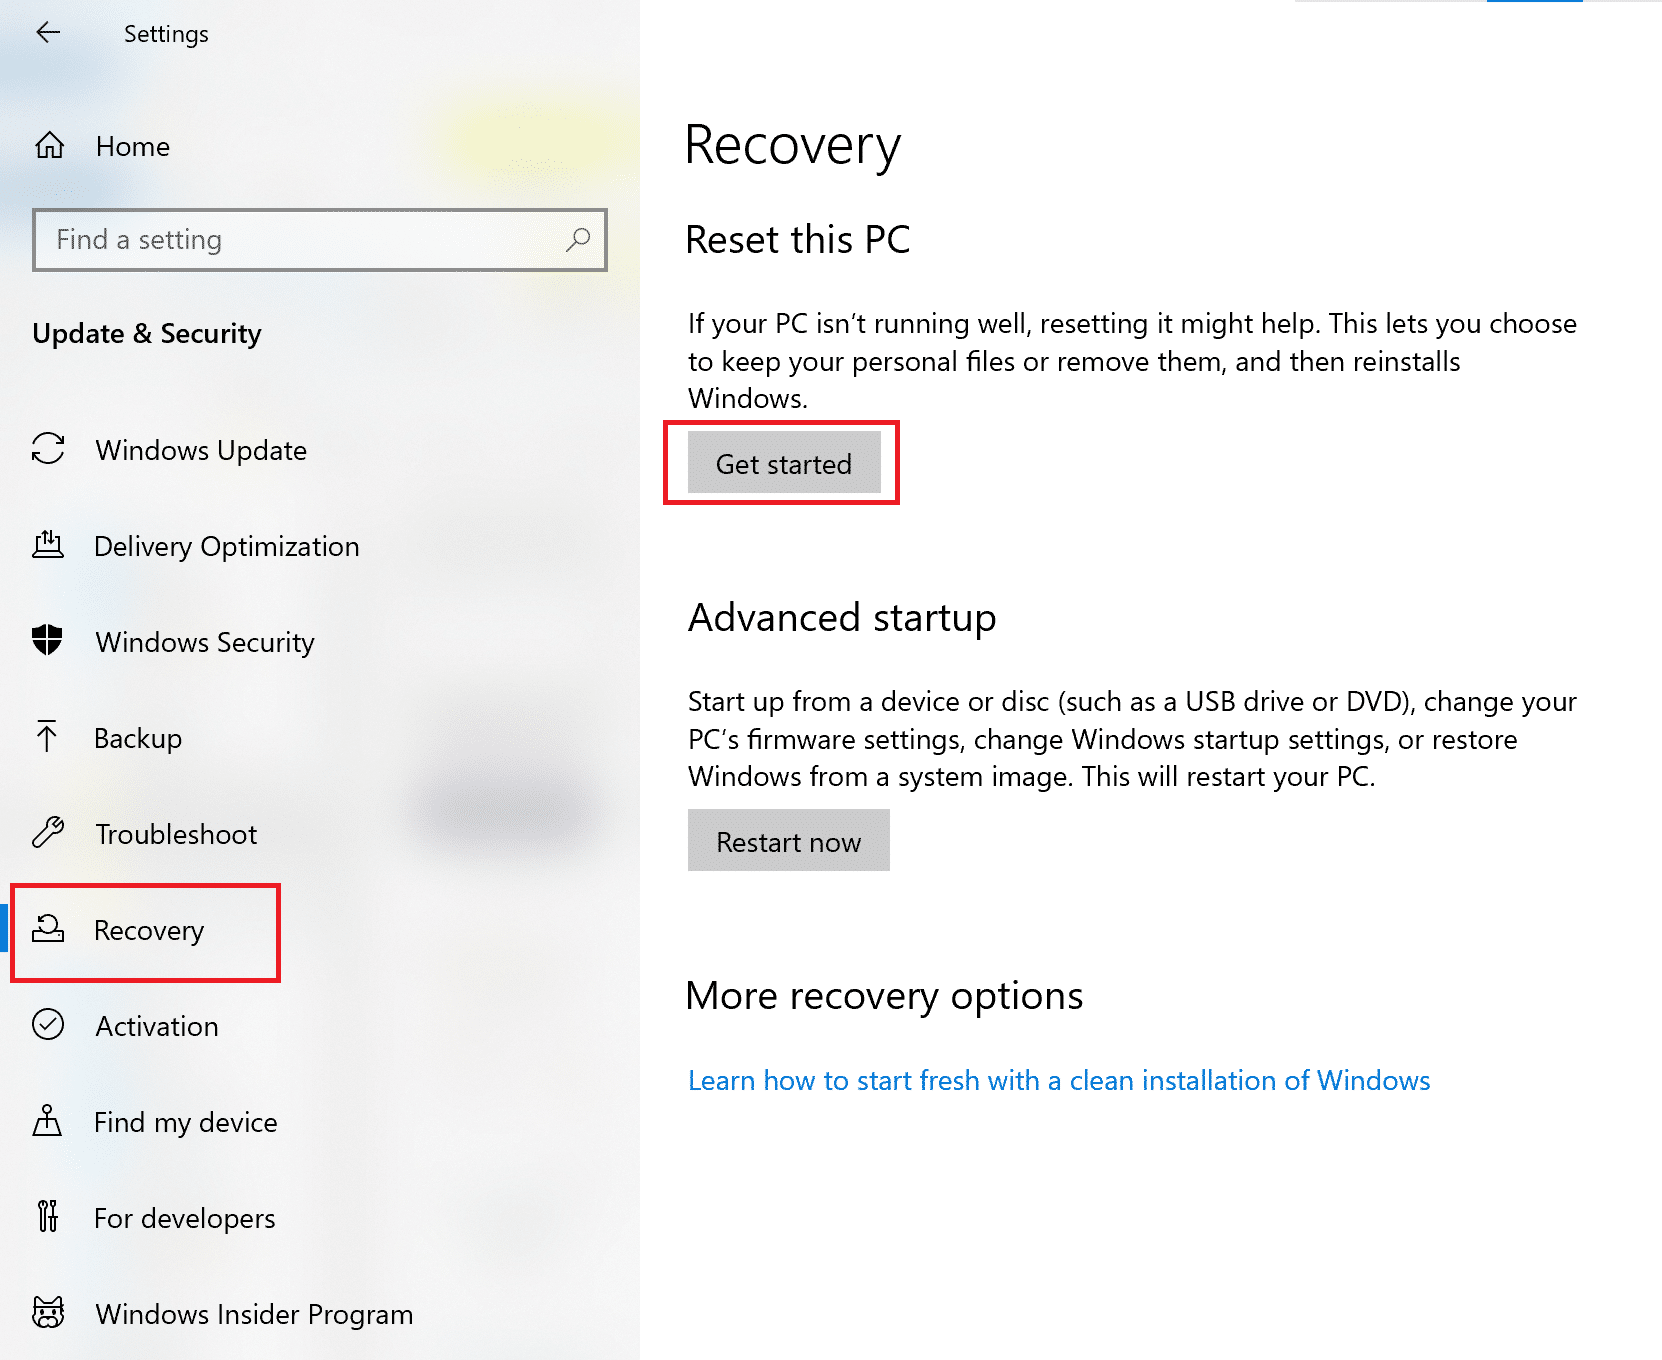 Click on Recovery. Then, click on Restart Now under Advanced Startup